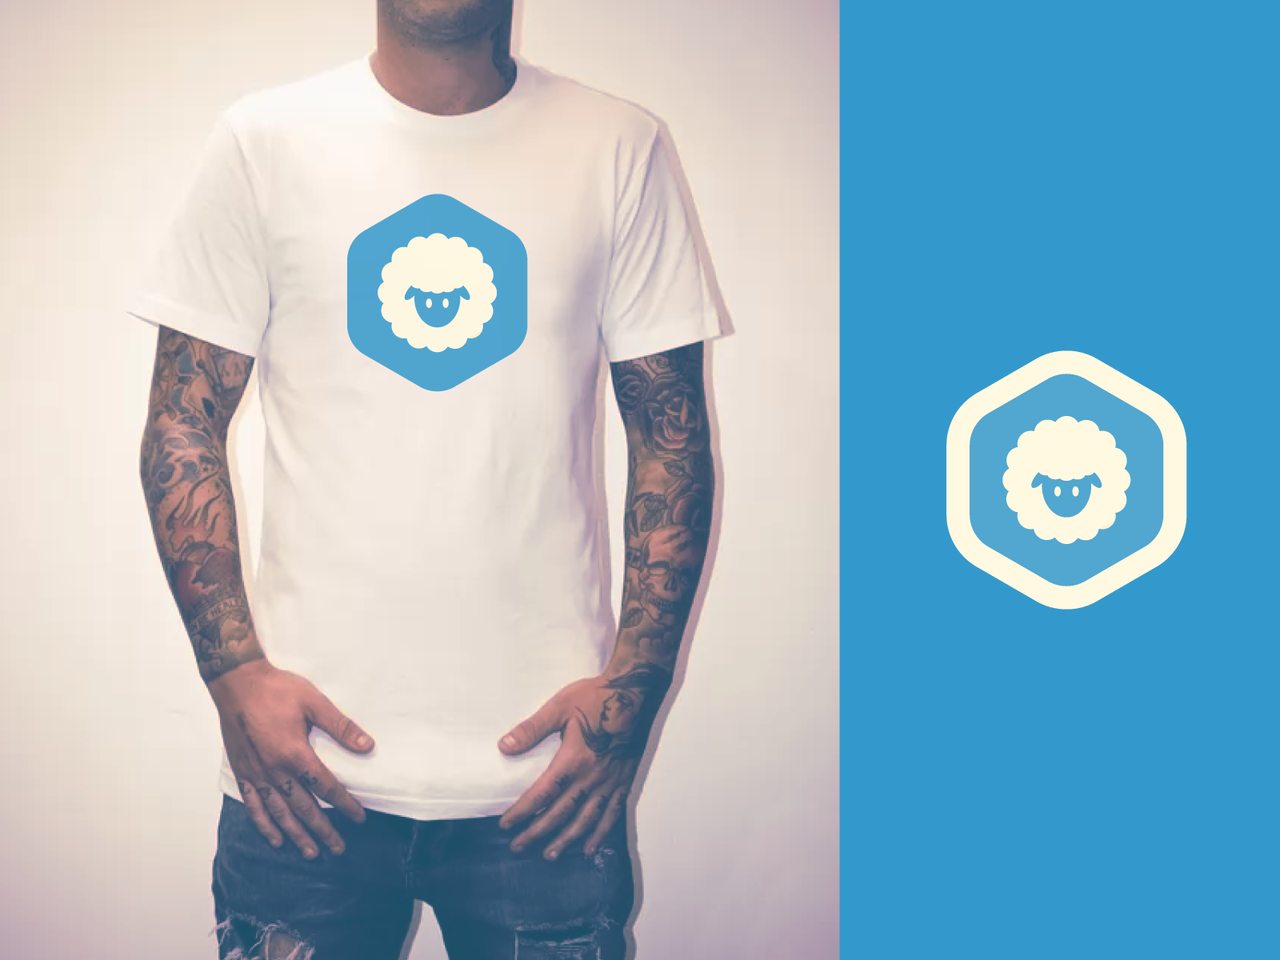 White sheep in hexagon on a T-shirt